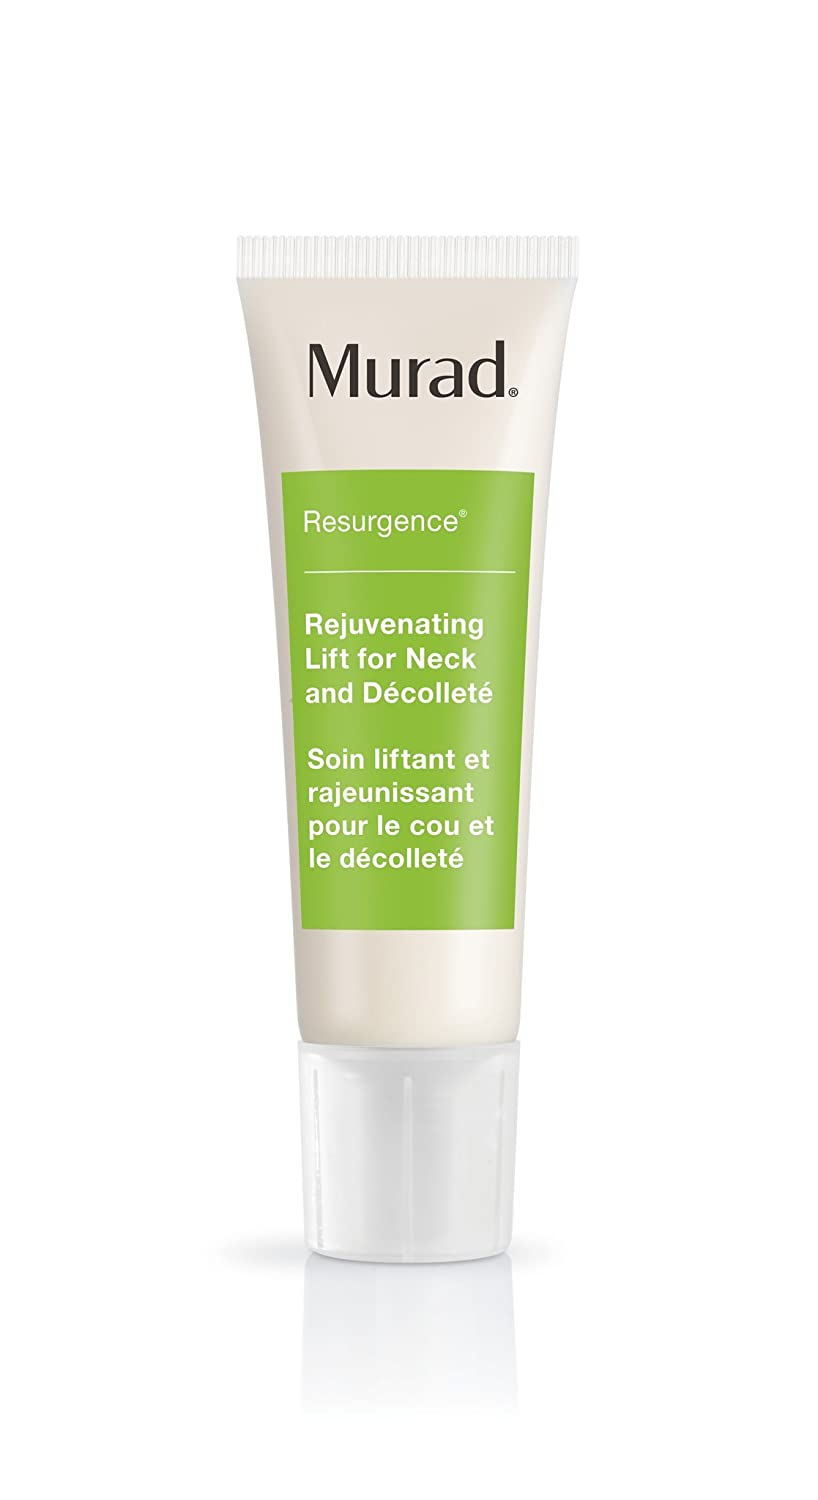 Murad Rejuvenating Lift for Neck and Decollete, 1.7 Fluid Ounce 80397